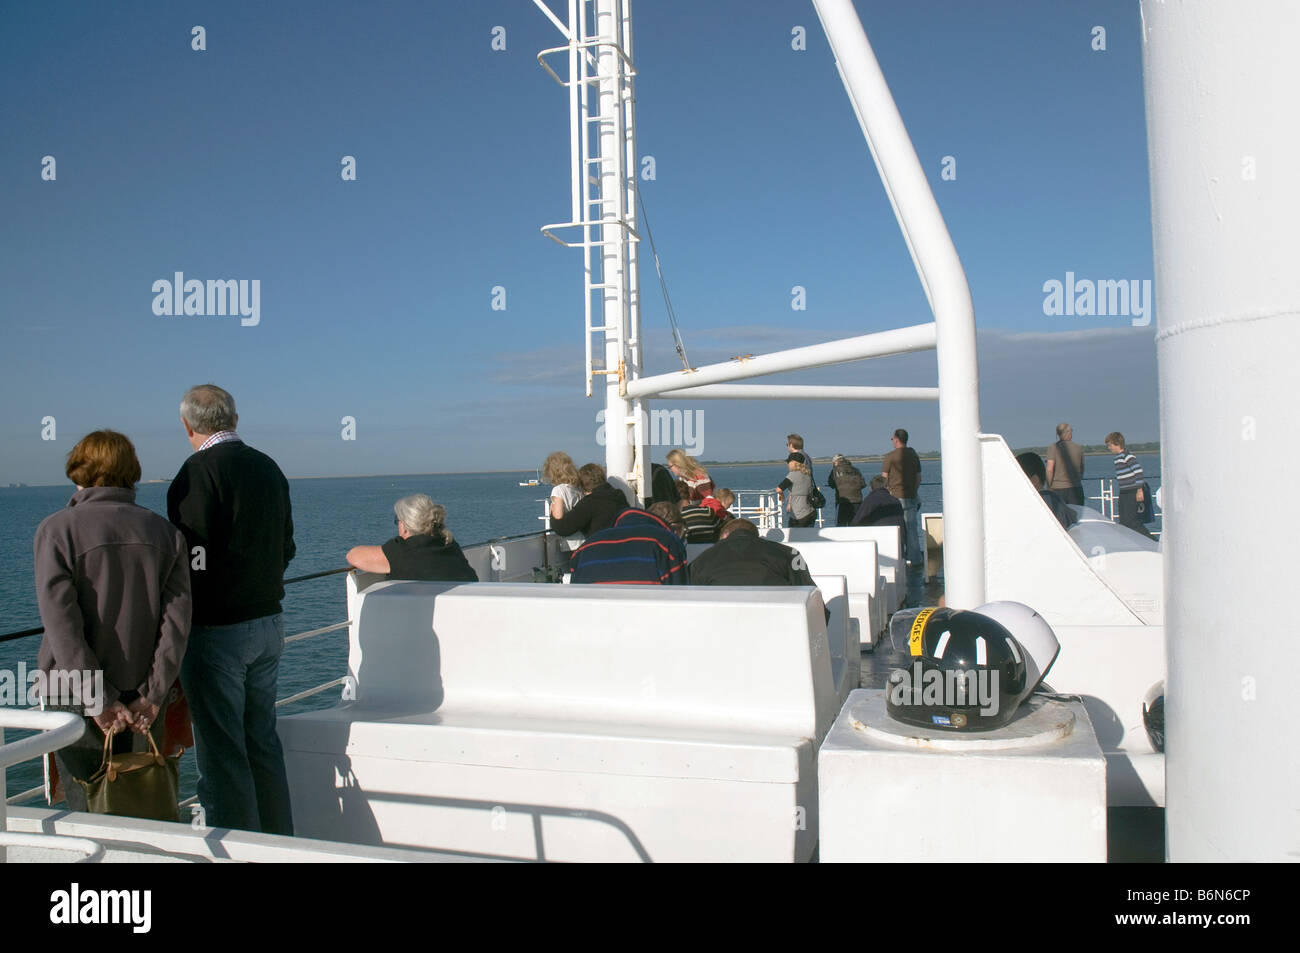 Passengers on the upper deck of the Wightlink Ferry going to Yarmouth on th eIsle of Wight - Stock Image